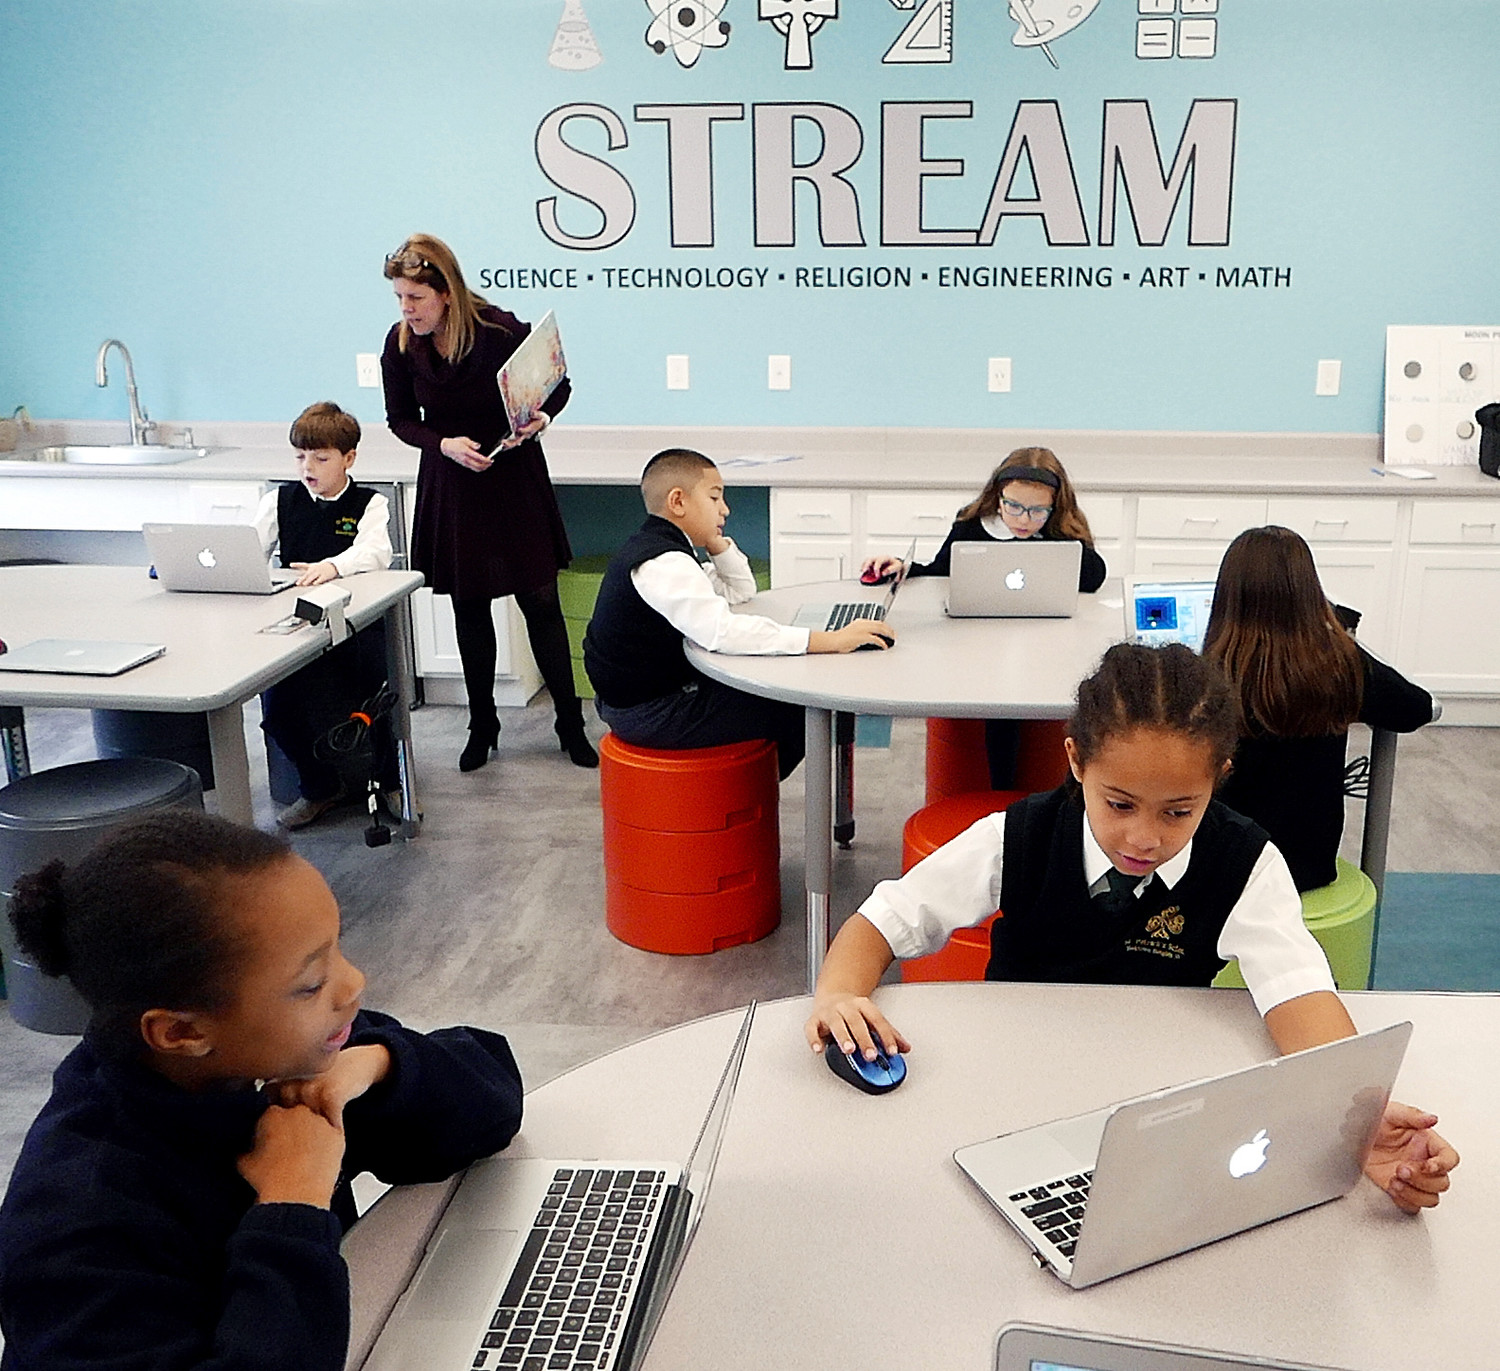 Computer technology instructor Jennifer Vespucci works with students in the Stream Center at St. Patrick's School in Yorktown Heights Jan. 11. St. Patrick's is one of 34 archdiocesan elementary schools using the Blended Learning teaching model this year.